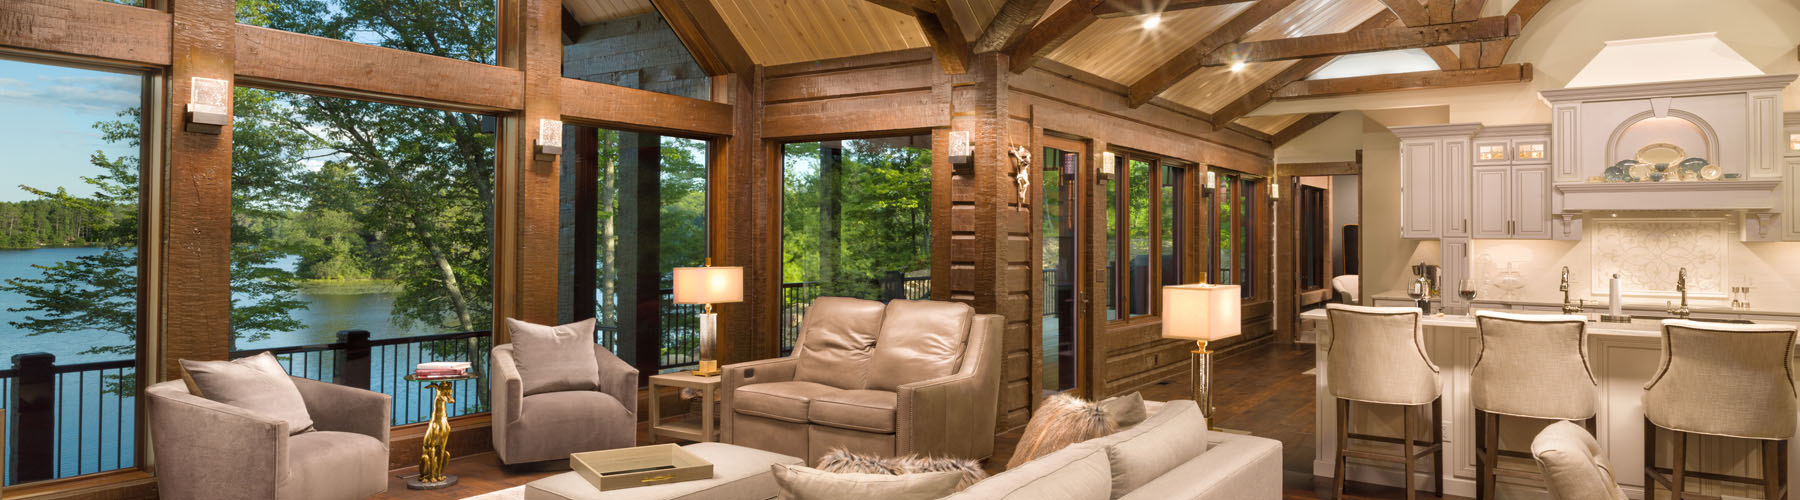 Timber Lake 2779AR-UCT Ranch Ultra Custom Timber